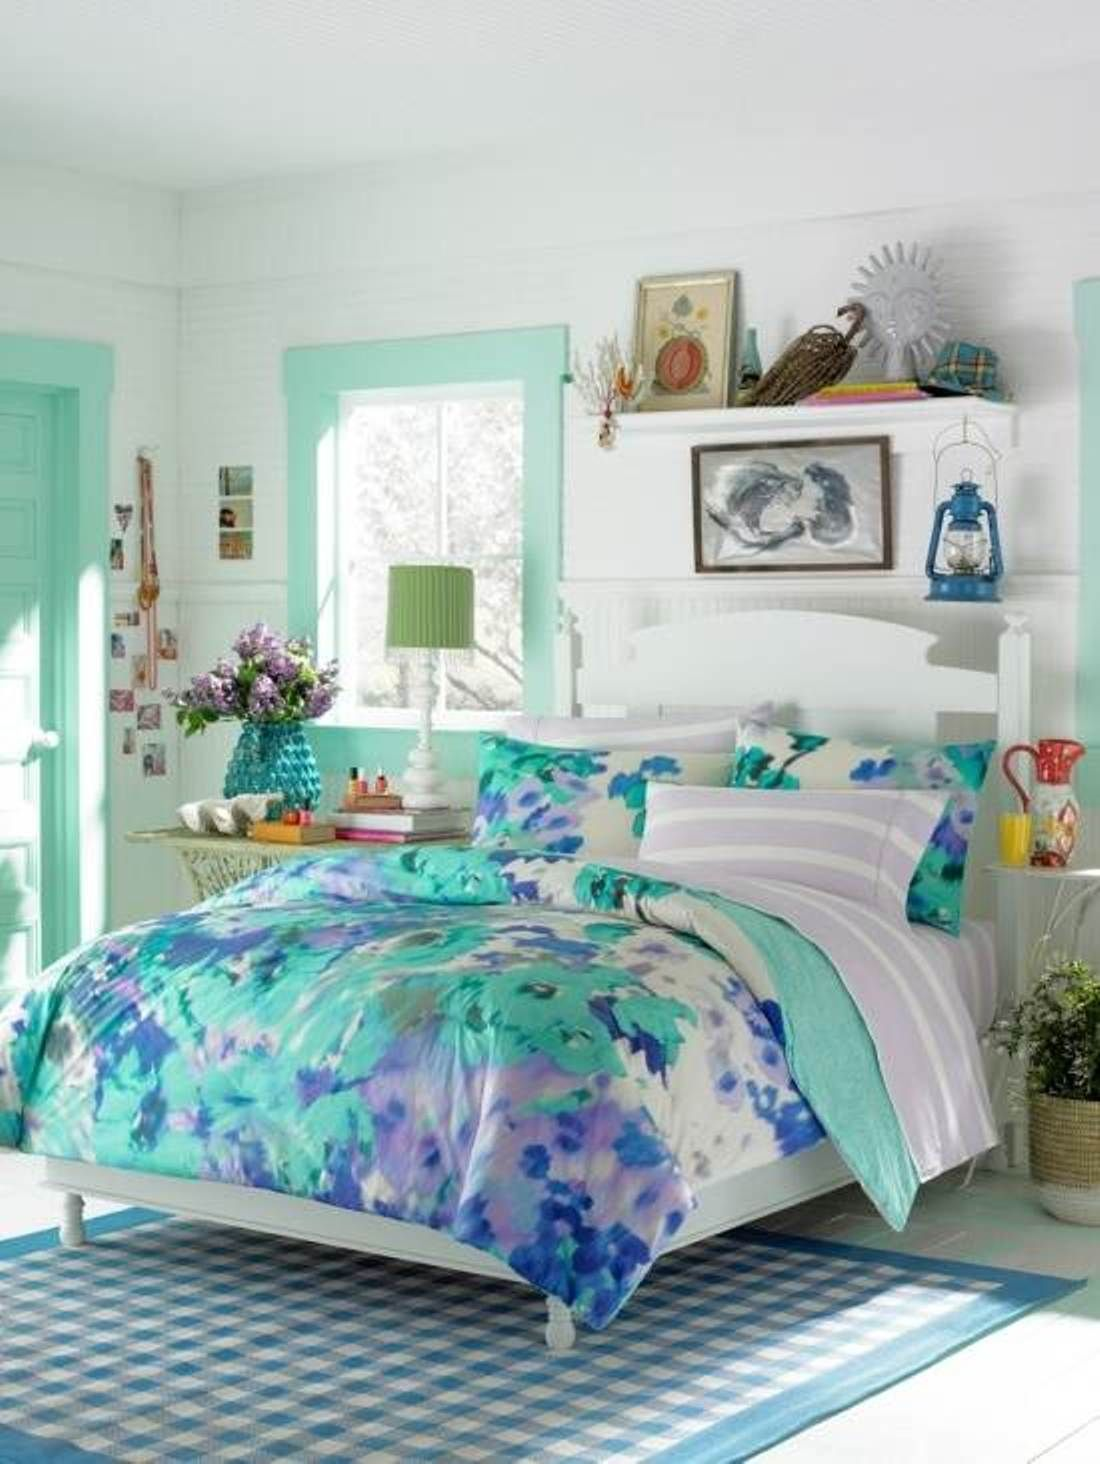 Blue and green bedroom - Exquisite Girl Bedroom Decorating Idea For Teenager With White Bed Frame And Sweet Flower Comforter And Blue Plaid Area Rug Also Green Indoor Plants